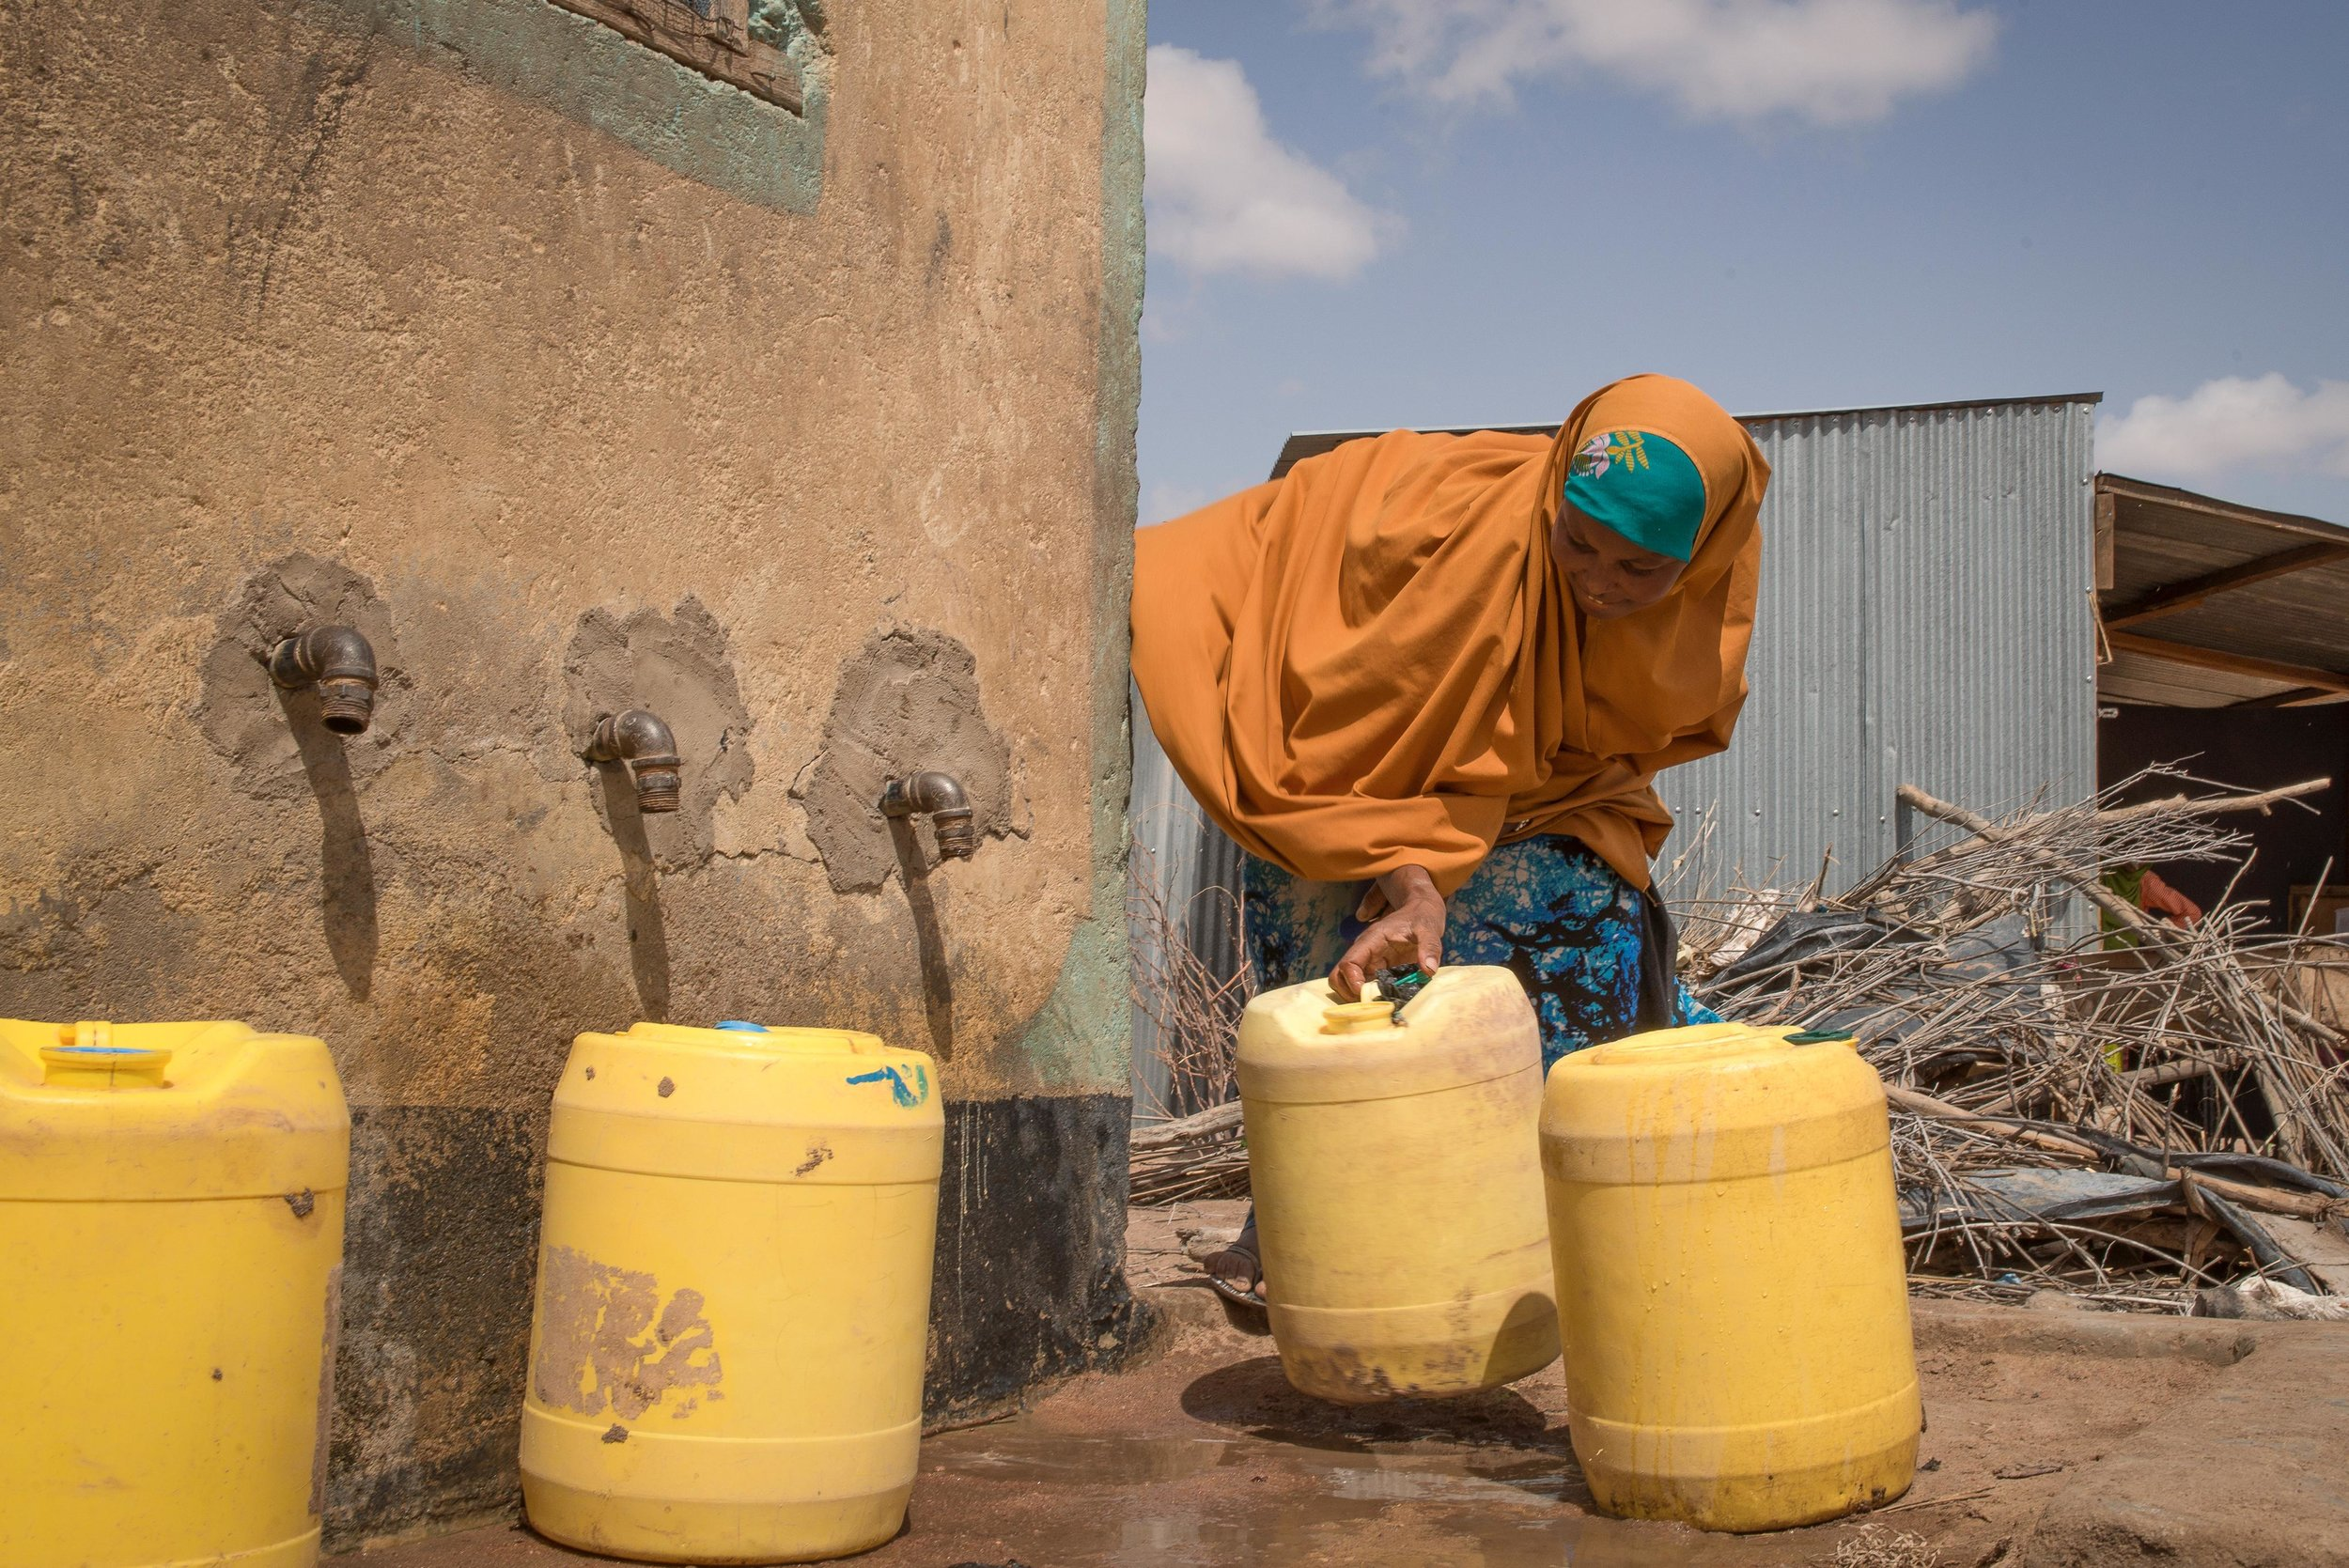 A woman uses her water credit, which is stored in a small, plastic token, to buy water from a Water ATM in Hadado, Kenya.